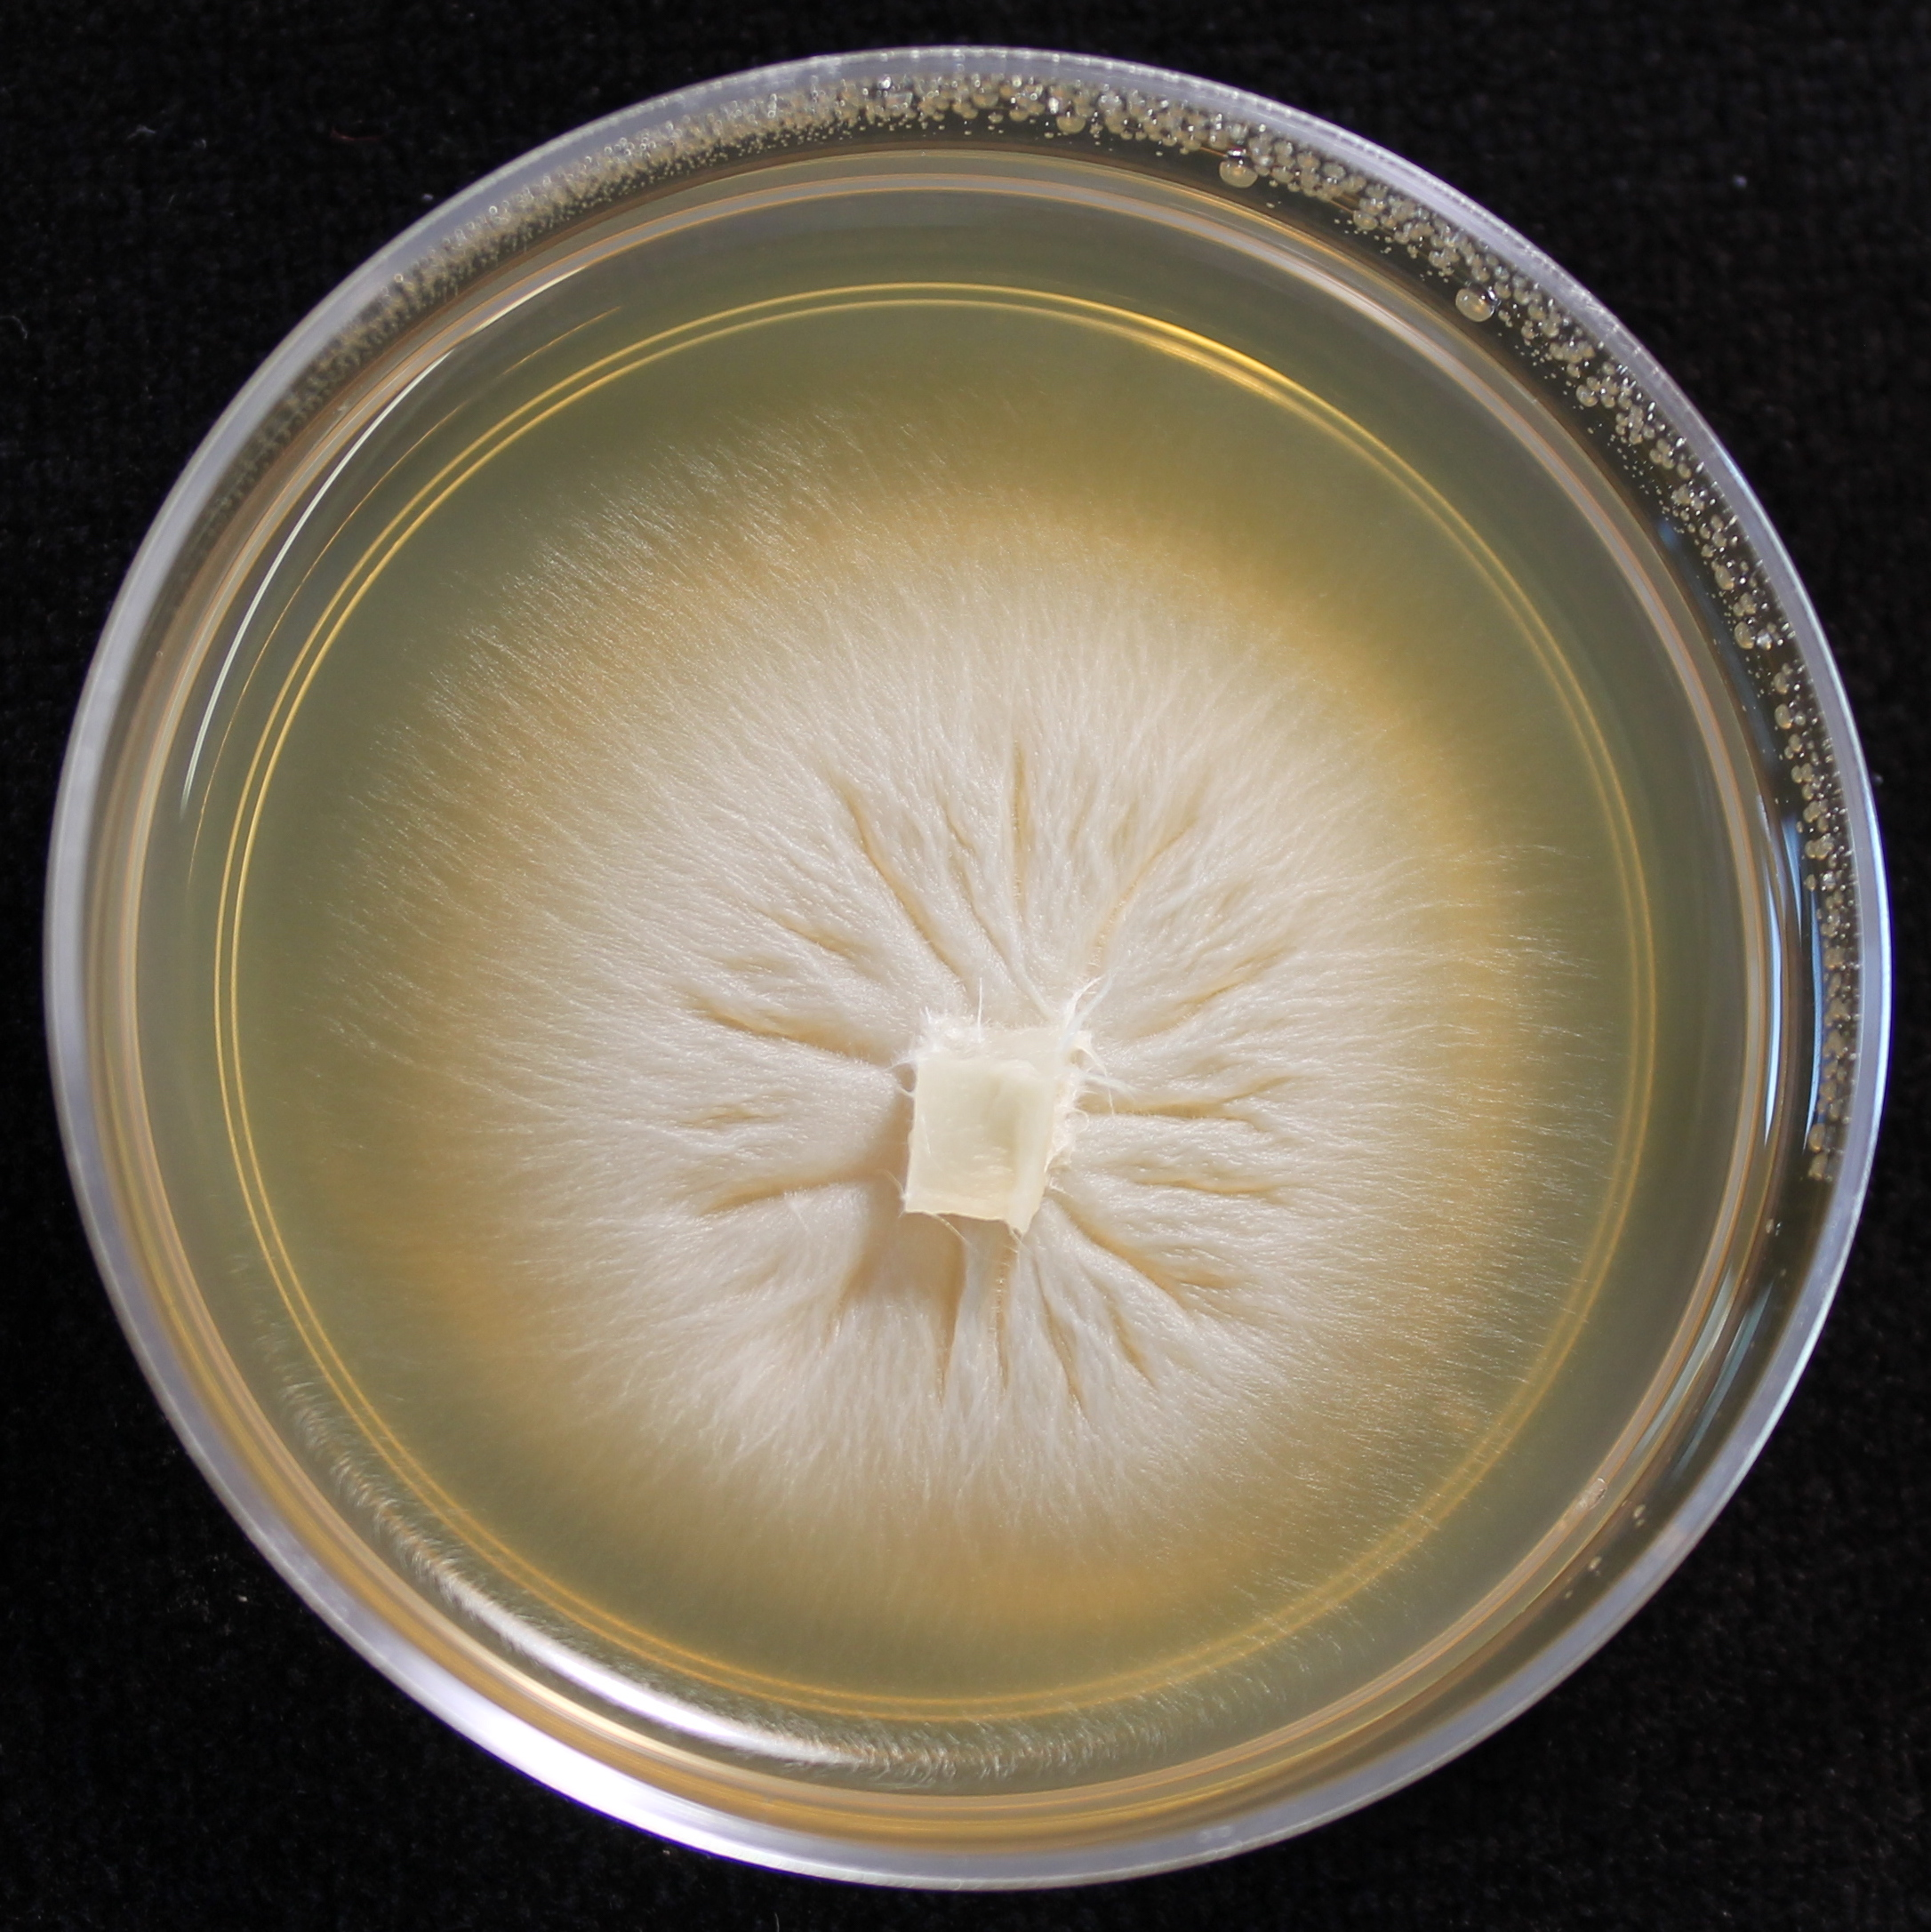 Photo credit: Jana M. U'Ren. Grown on 2% Malt Extract Agar.